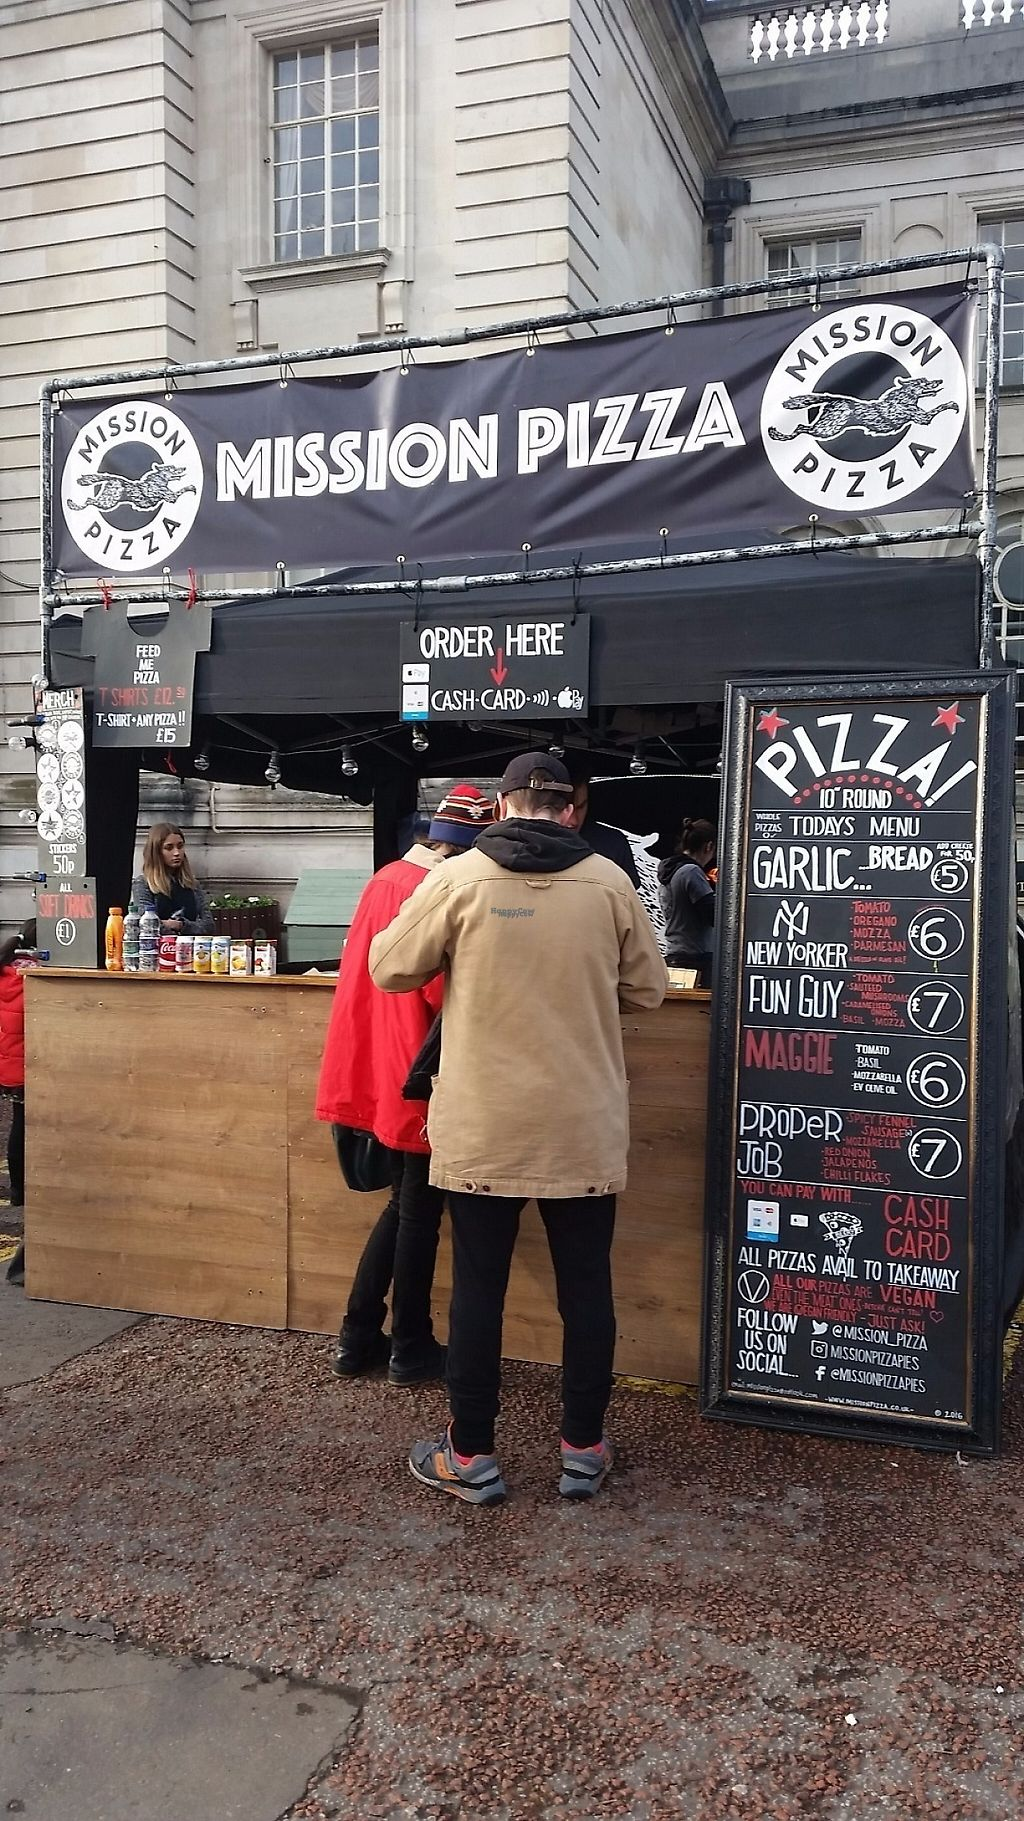 "Photo of Mission Pizza  by <a href=""/members/profile/konlish"">konlish</a> <br/>Stall at  Cardiff Viva! Vegan Festival  <br/> February 18, 2017  - <a href='/contact/abuse/image/86659/227963'>Report</a>"